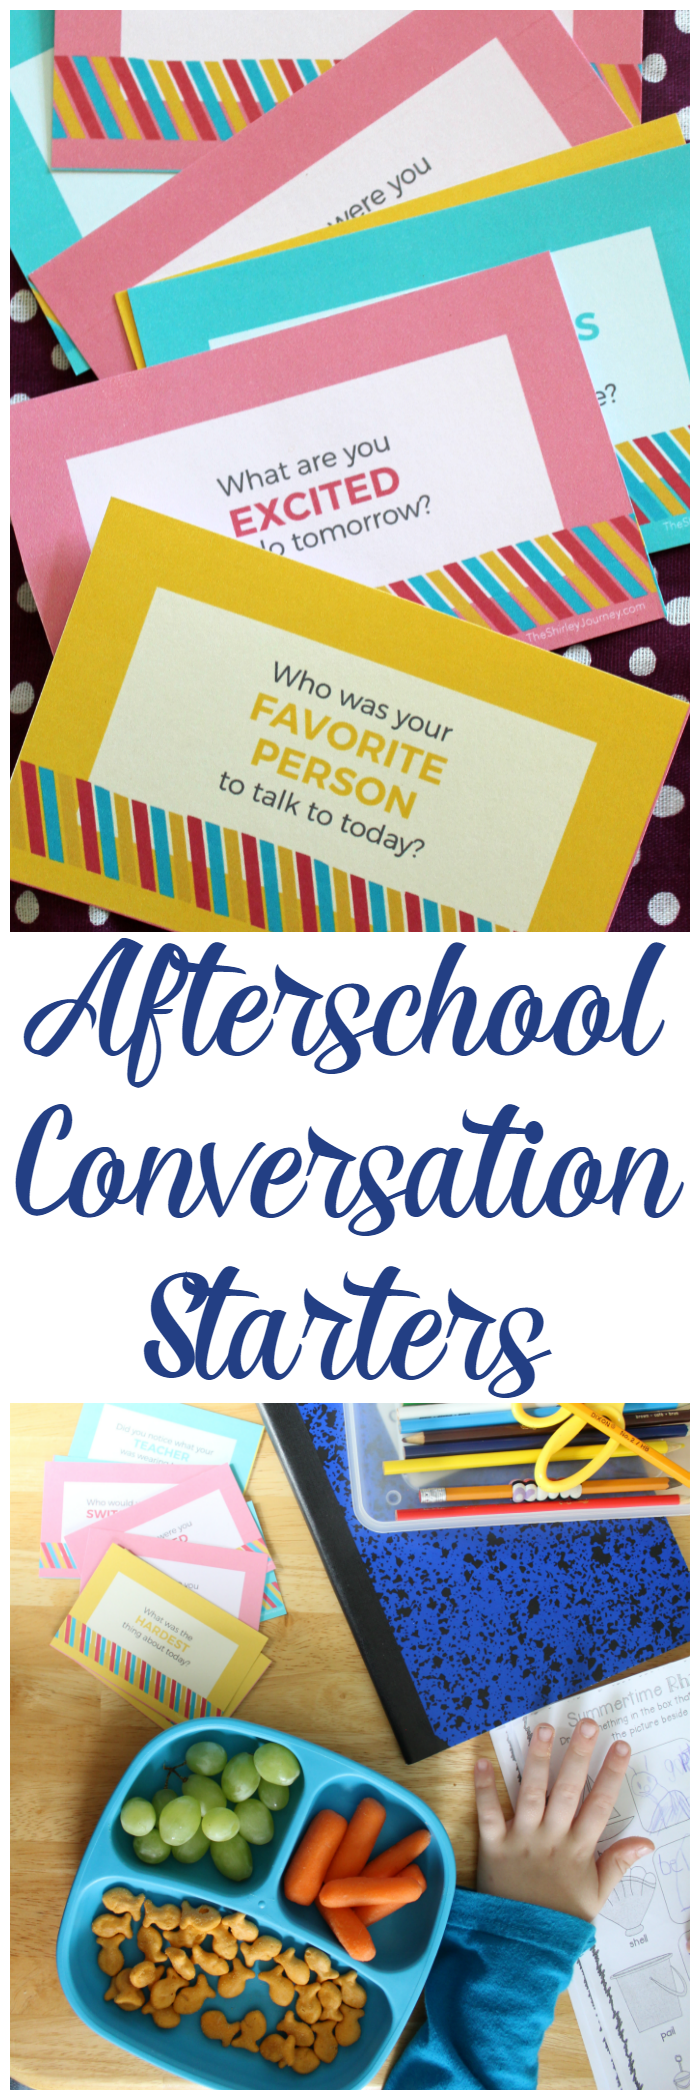 "These printable conversation starters are just what you need to connect with your kid after school! No more ""how was your day"" questions!"